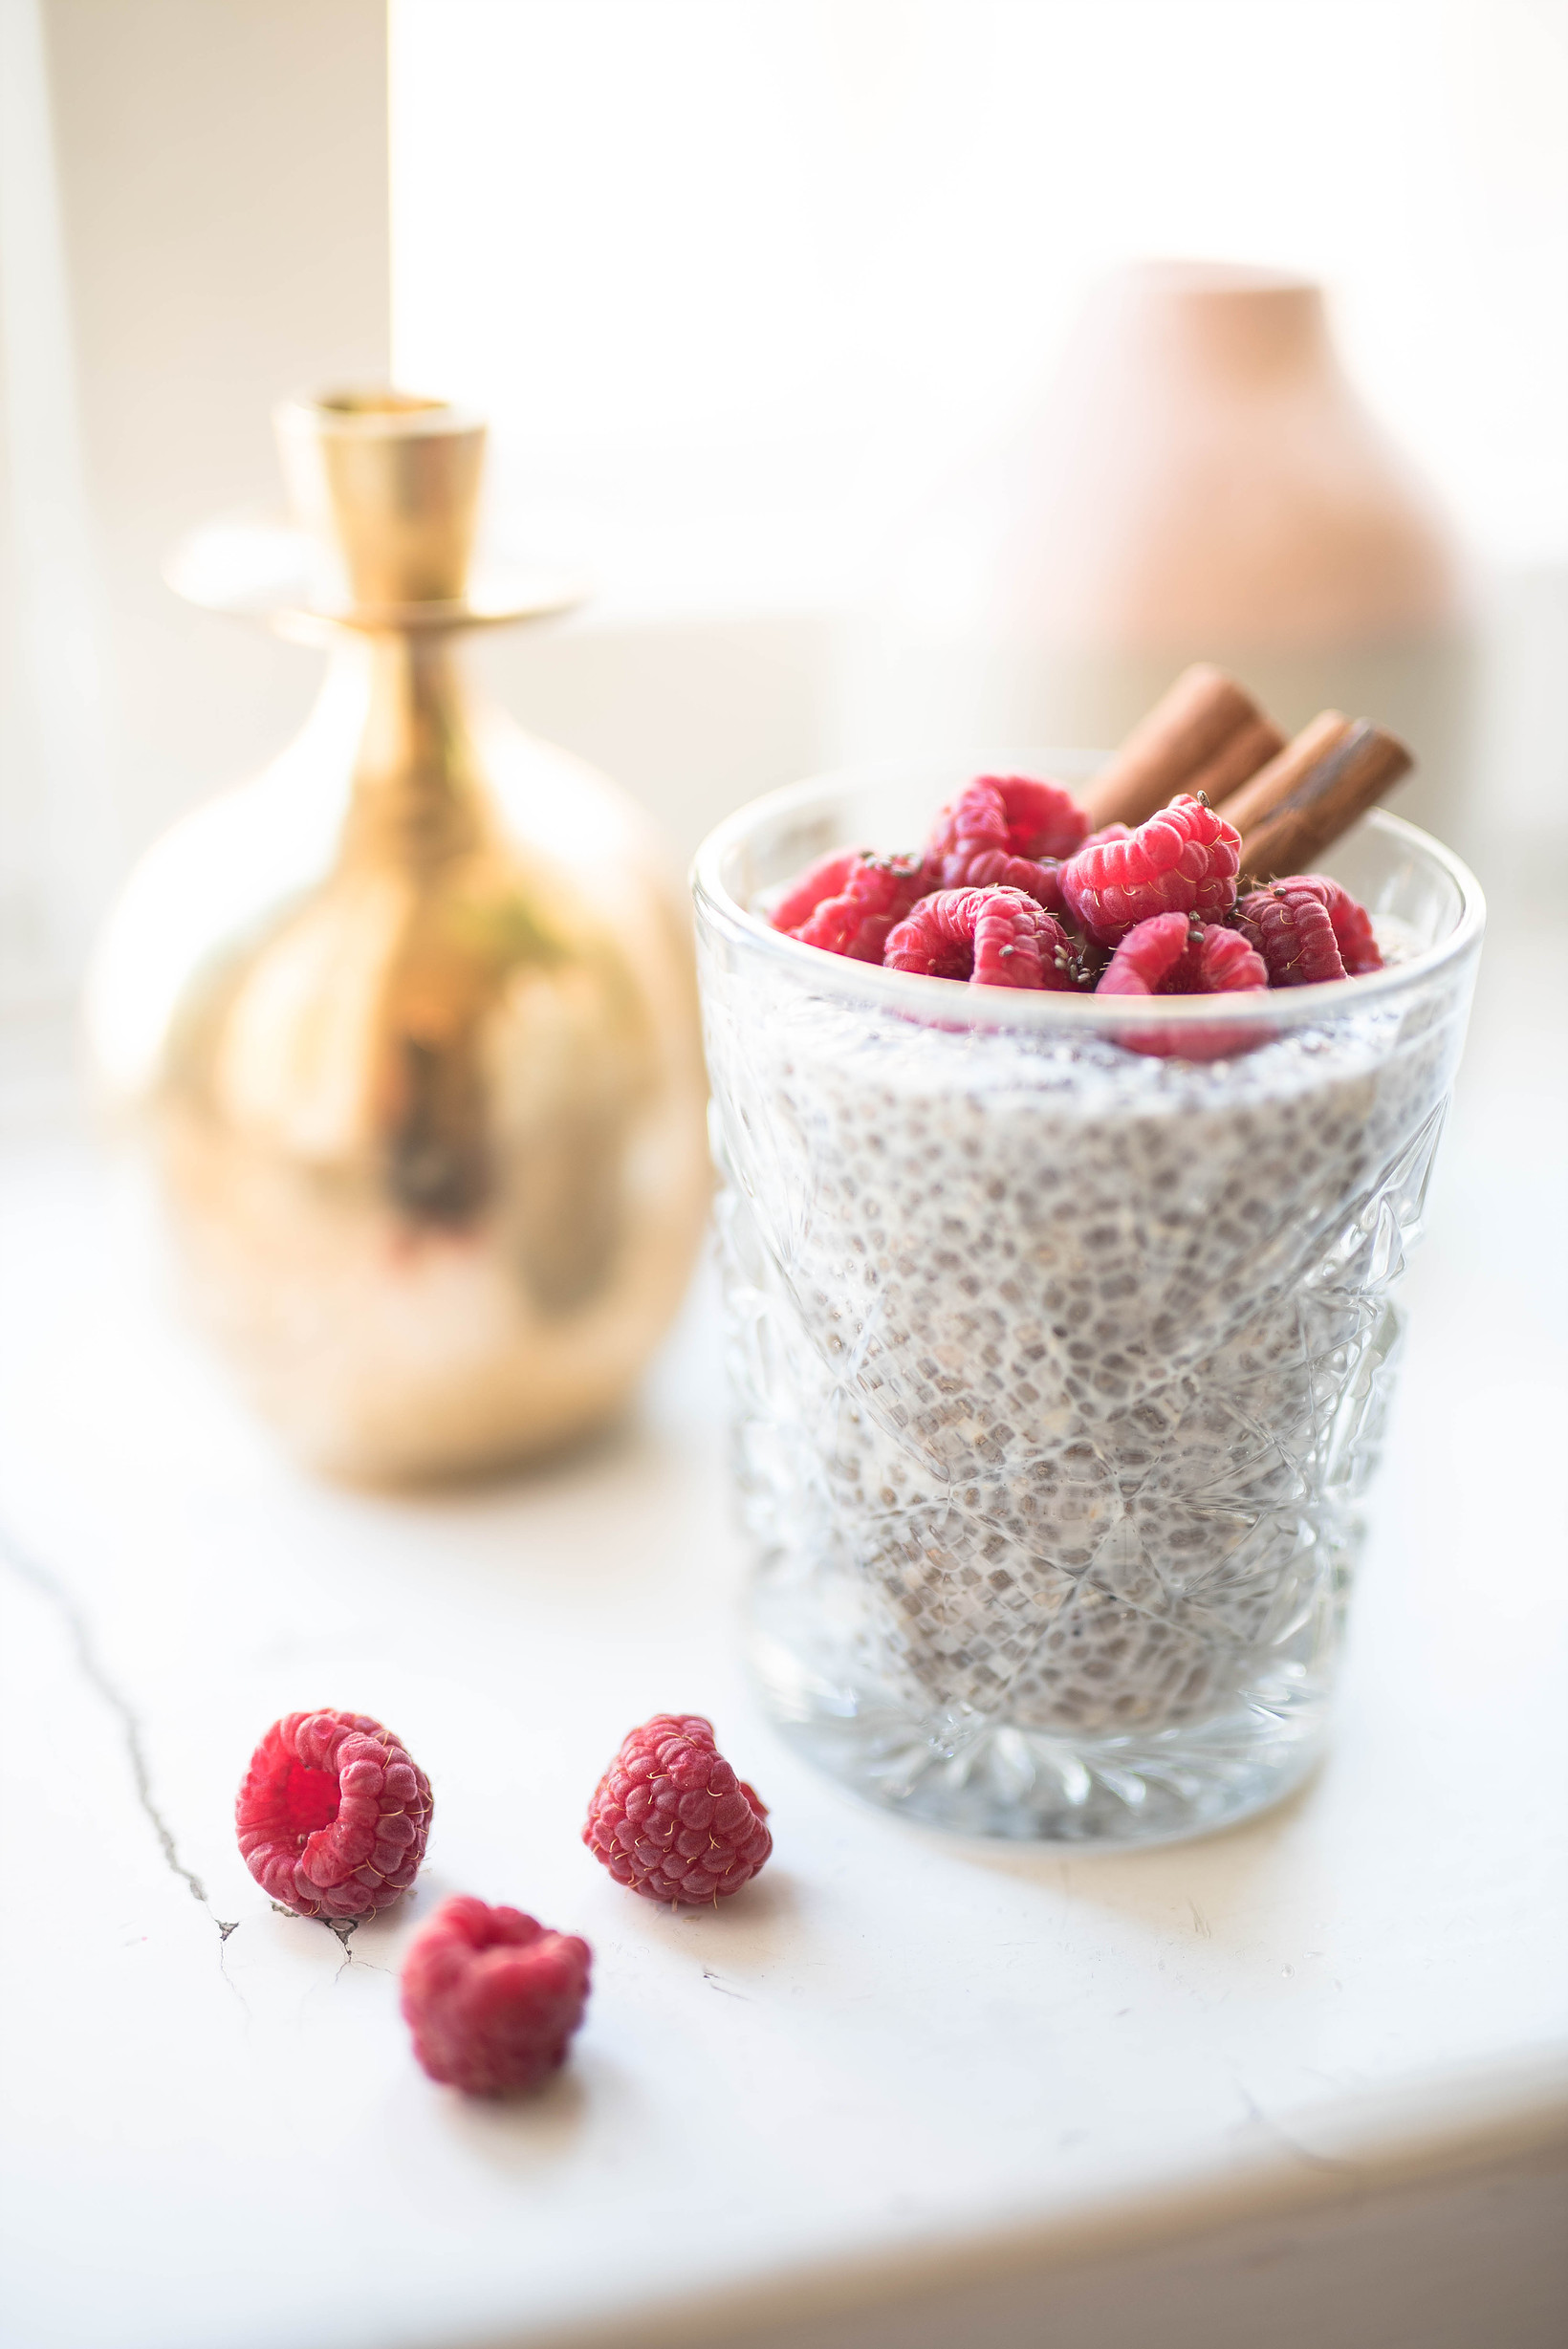 FRESH CHIAYOGURT & 10 BENEFITS OF CHIA